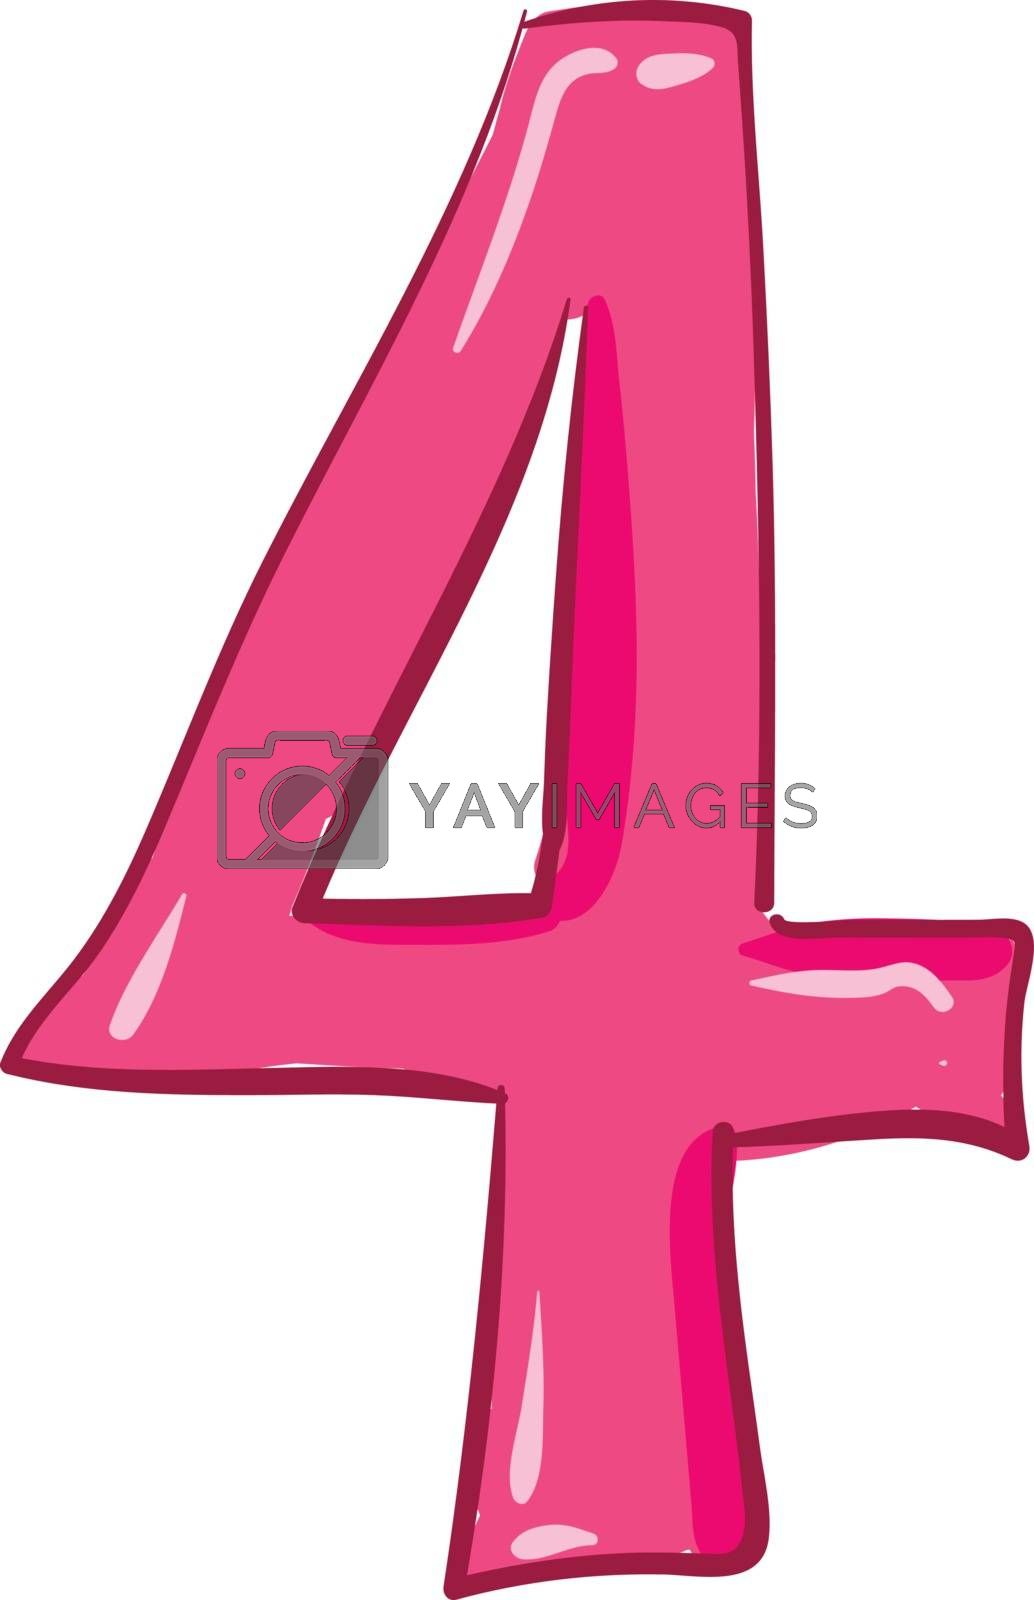 Royalty free image of Clipart of the numerical number four or 4 in pink color vector o by Morphart